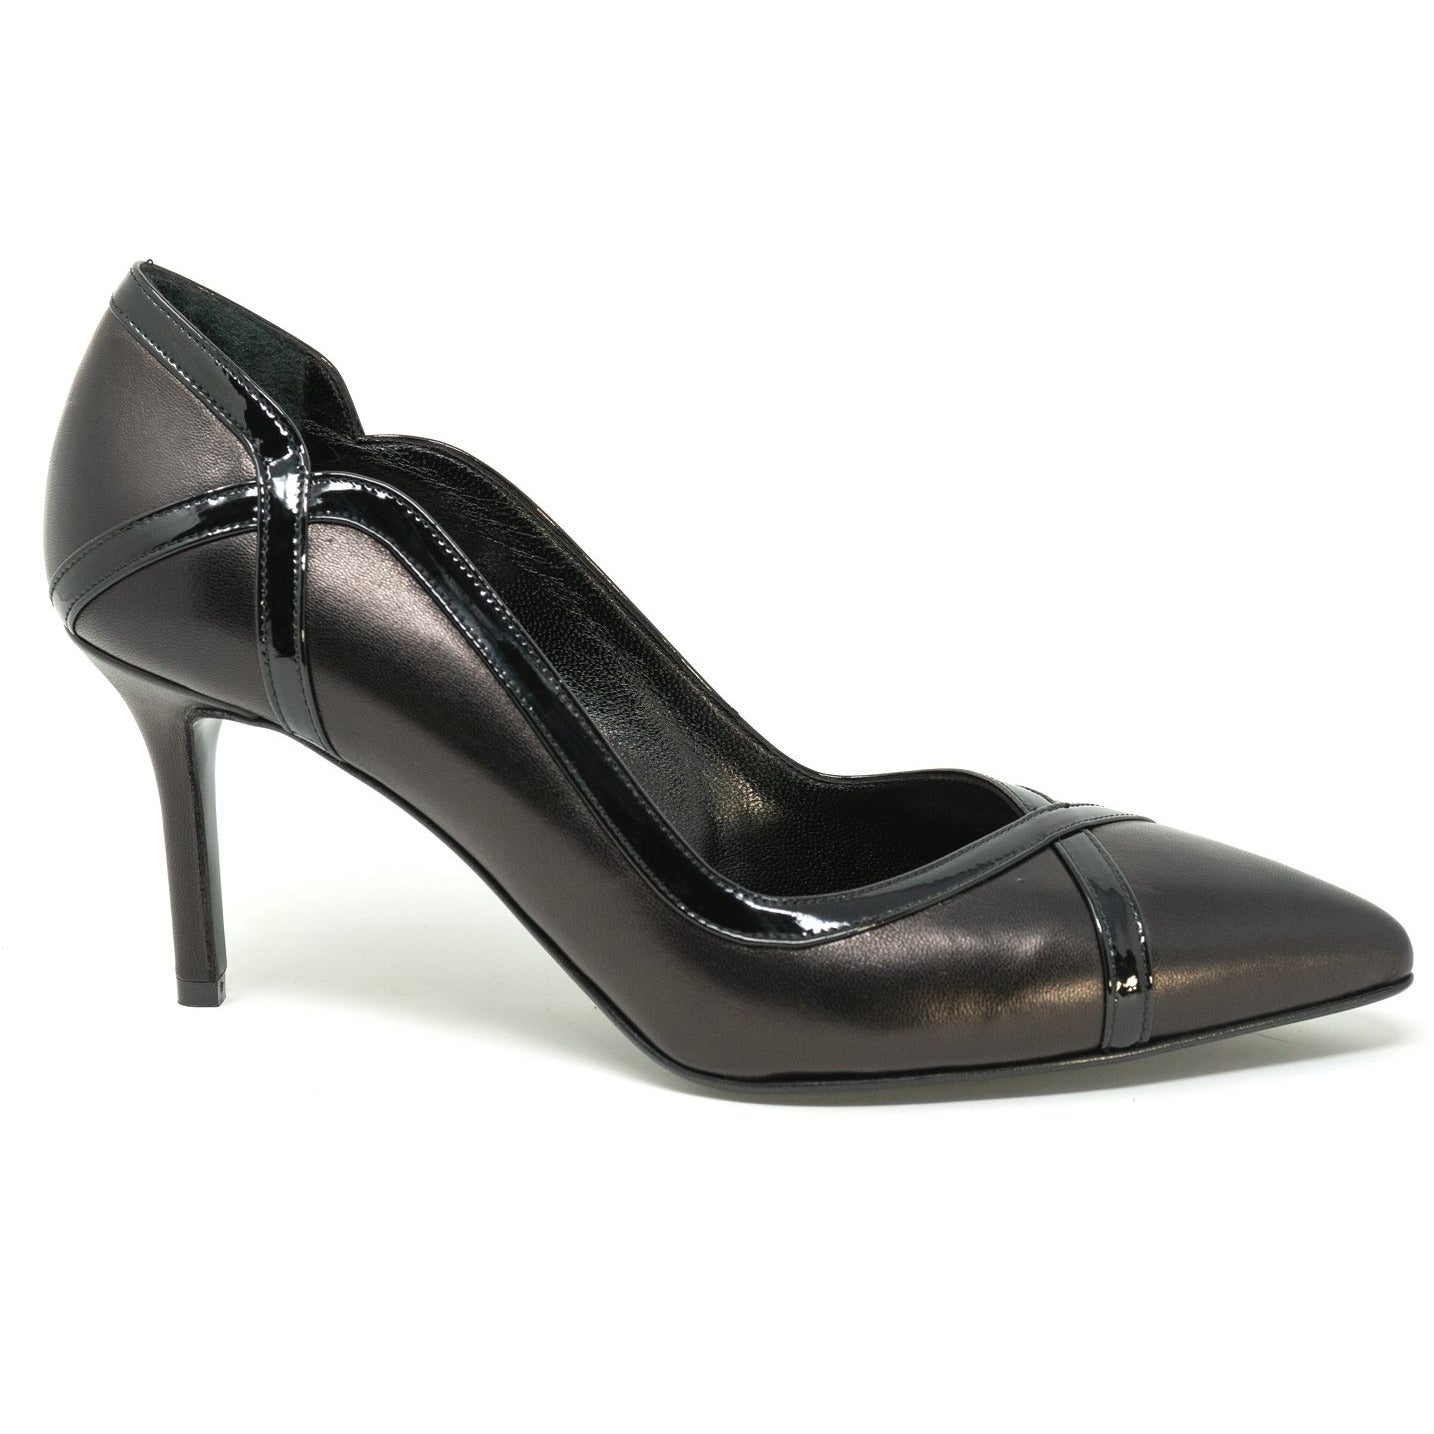 DDL3906 T70 Women Pumps - Jennifer Tattanelli Signature Collection